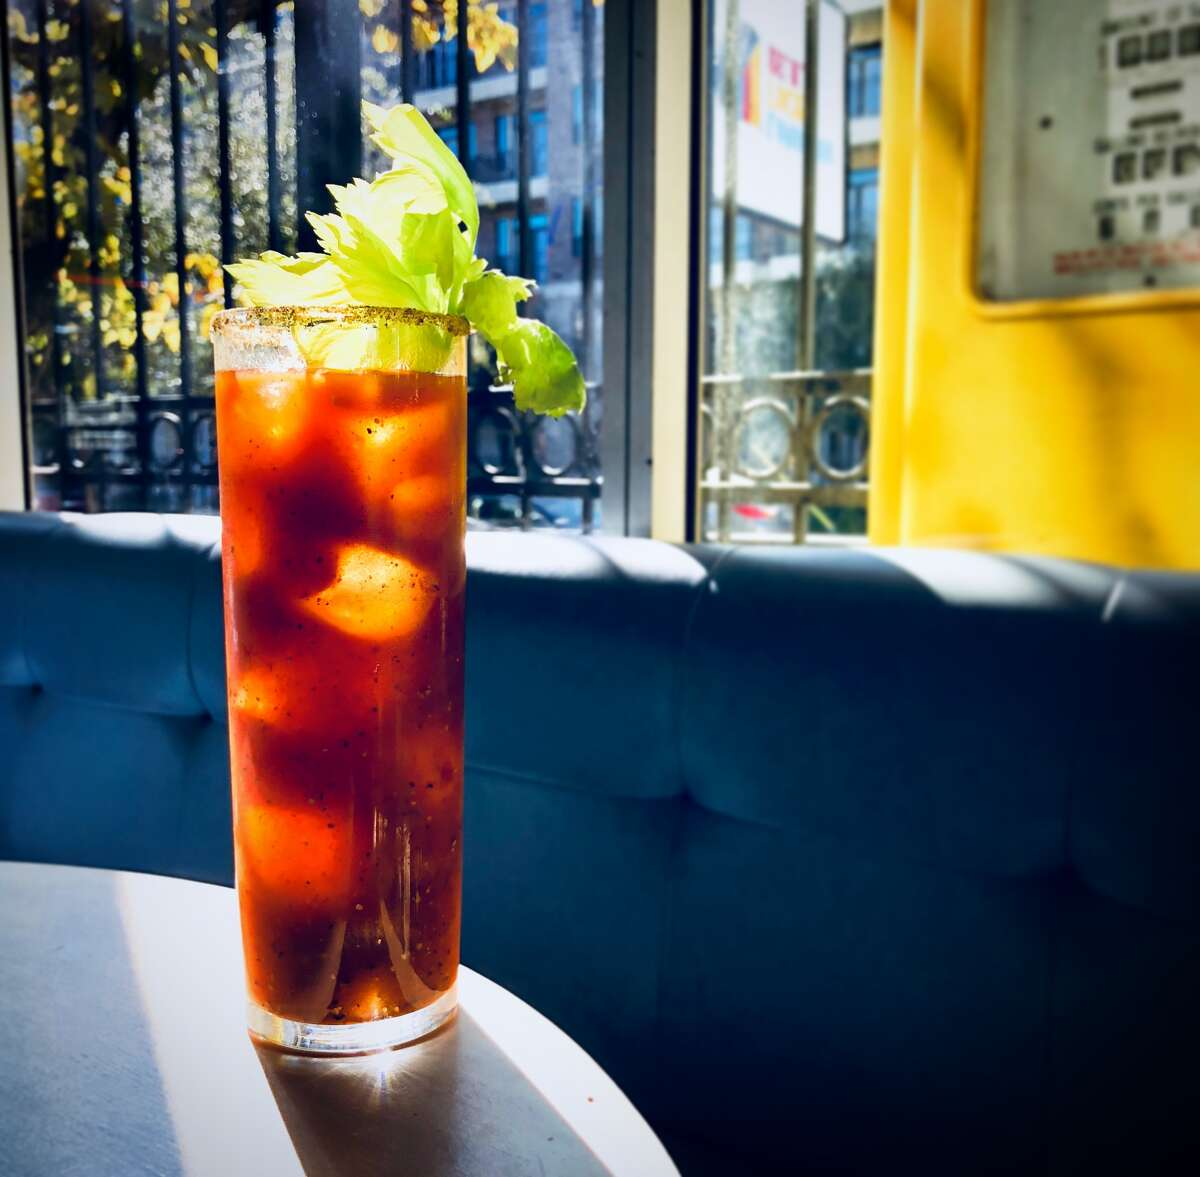 Better Luck Tomorrow, the Heights bar from bartender Bobby Heugel and chef Justin Yu, will begin weekend brunch service Dec. 2. Brunch will be offered Saturday and Sunday 11 a.m. to 3:30 p.m. Shown: Brunch Bloody Mary.